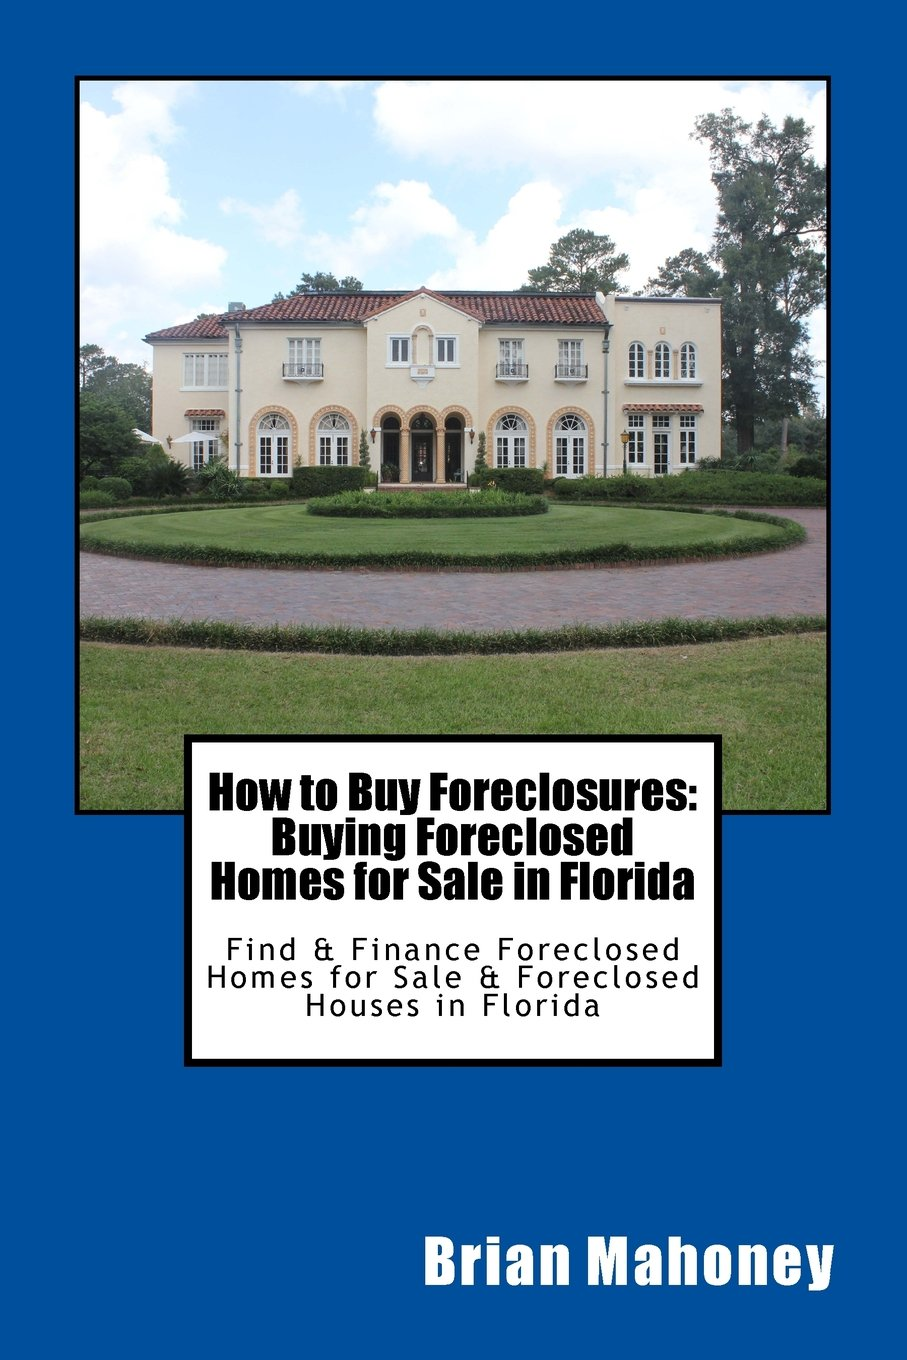 How to Buy Foreclosures: Buying Foreclosed Homes for Sale in